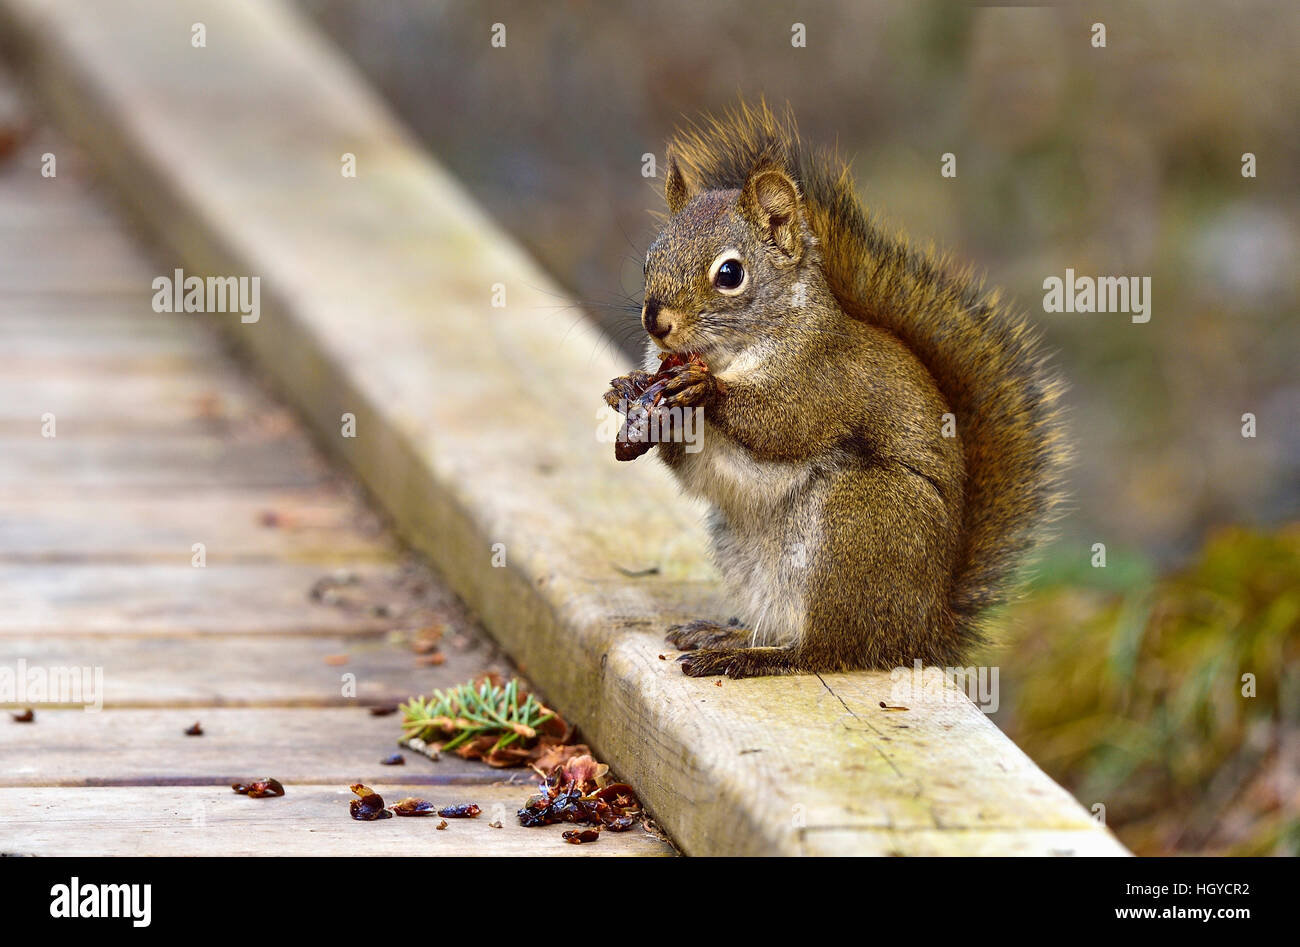 A Red Squirrel  Tamiasciurus hudsonicus; sitting on the boardwalk holding a spruce cone between his paws. - Stock Image